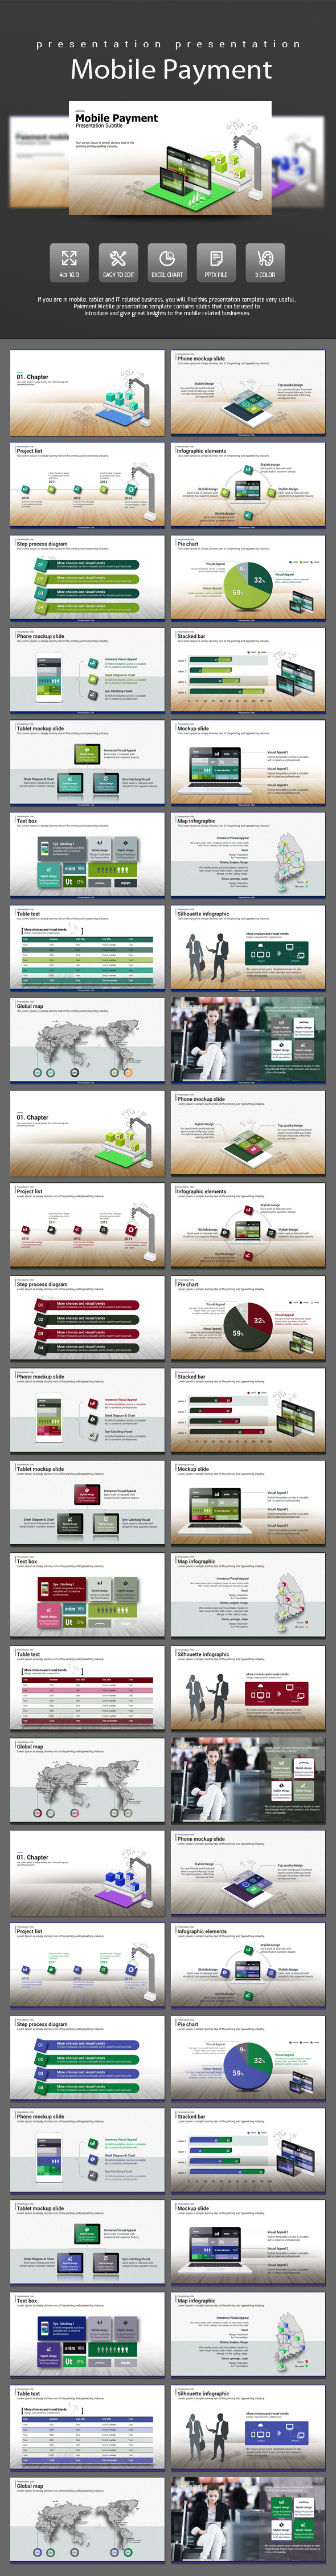 Mobile Payment - PowerPoint Templates Presentation Templates